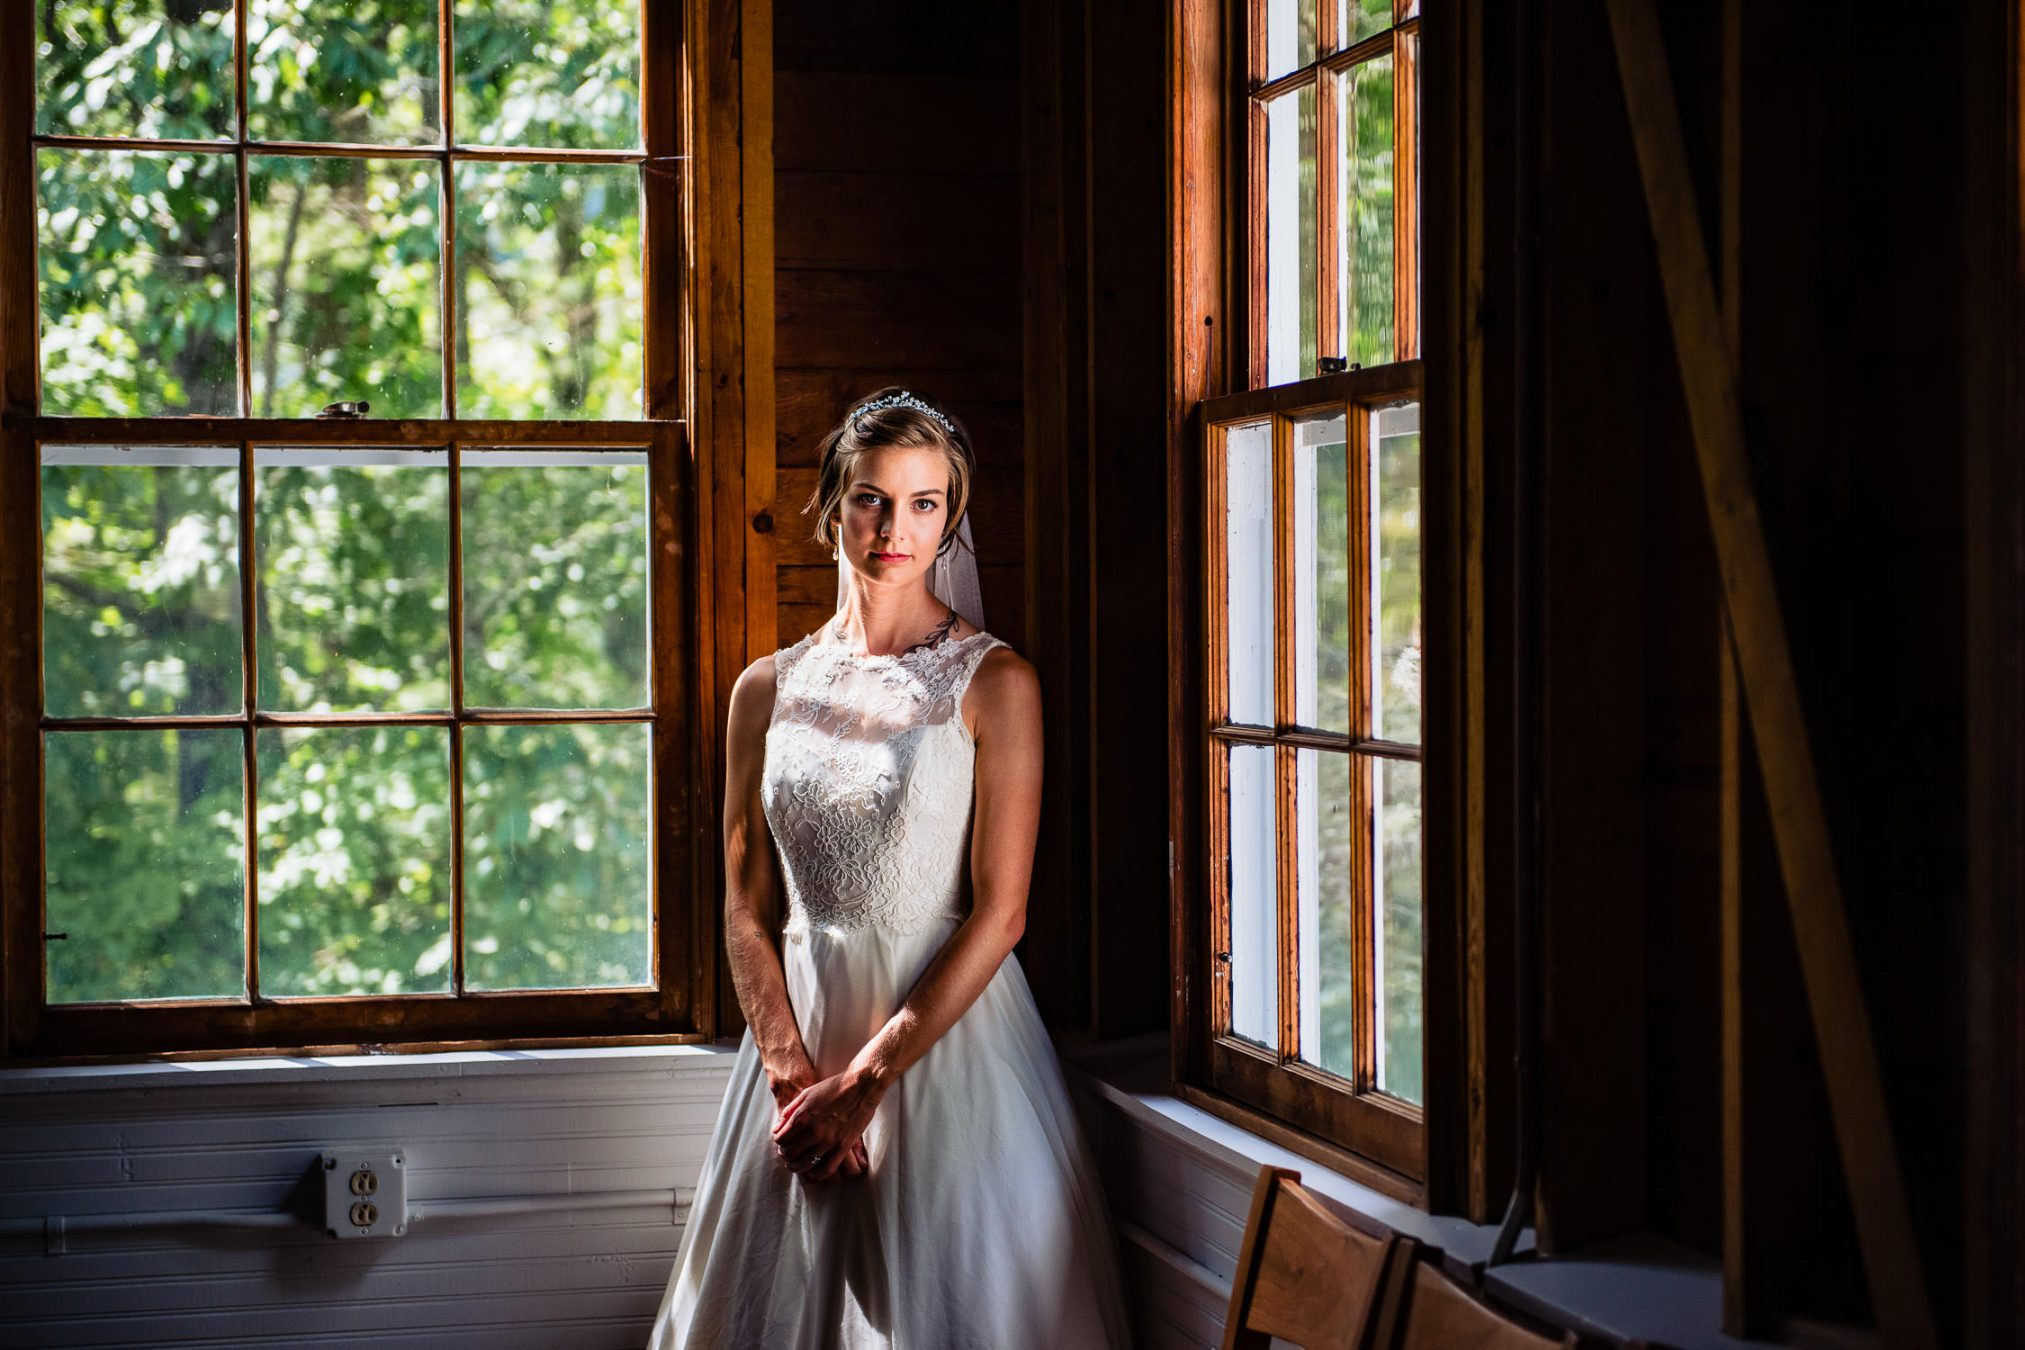 bridal portrait by cabin windows